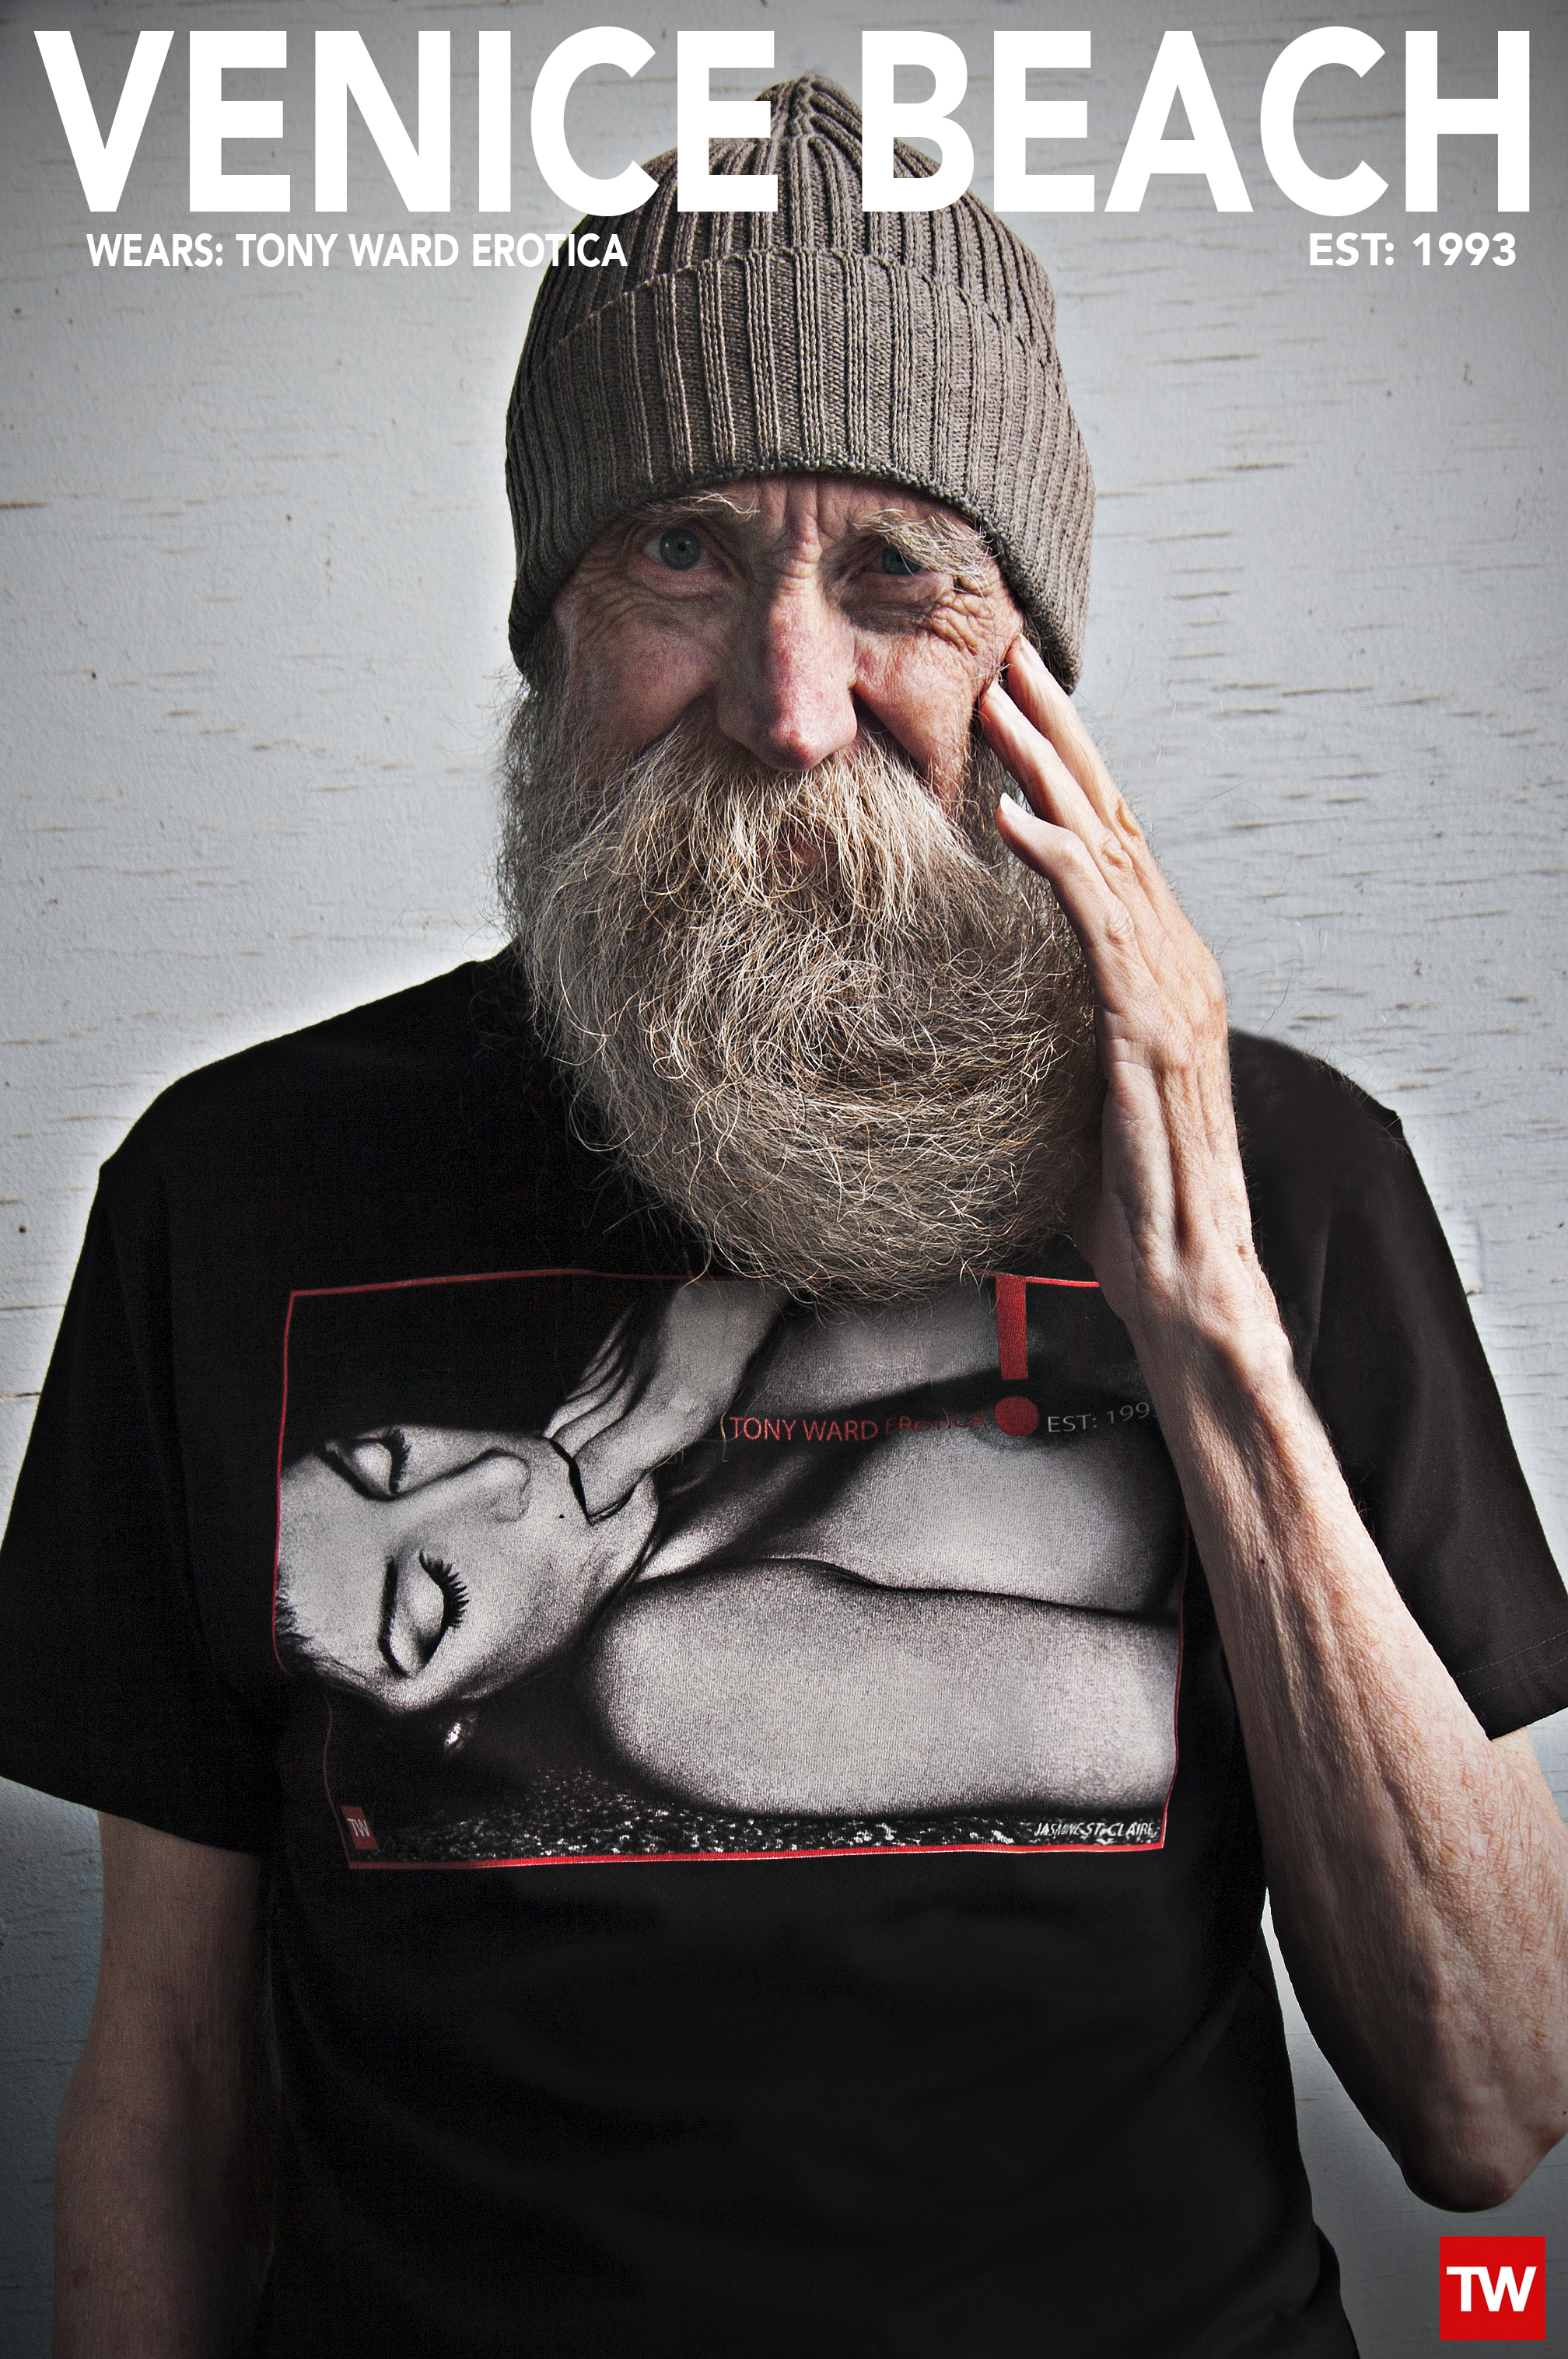 Tony_Ward_erotica_t-shirts_venice_beach_california_bearded_men_portraiture_portrait